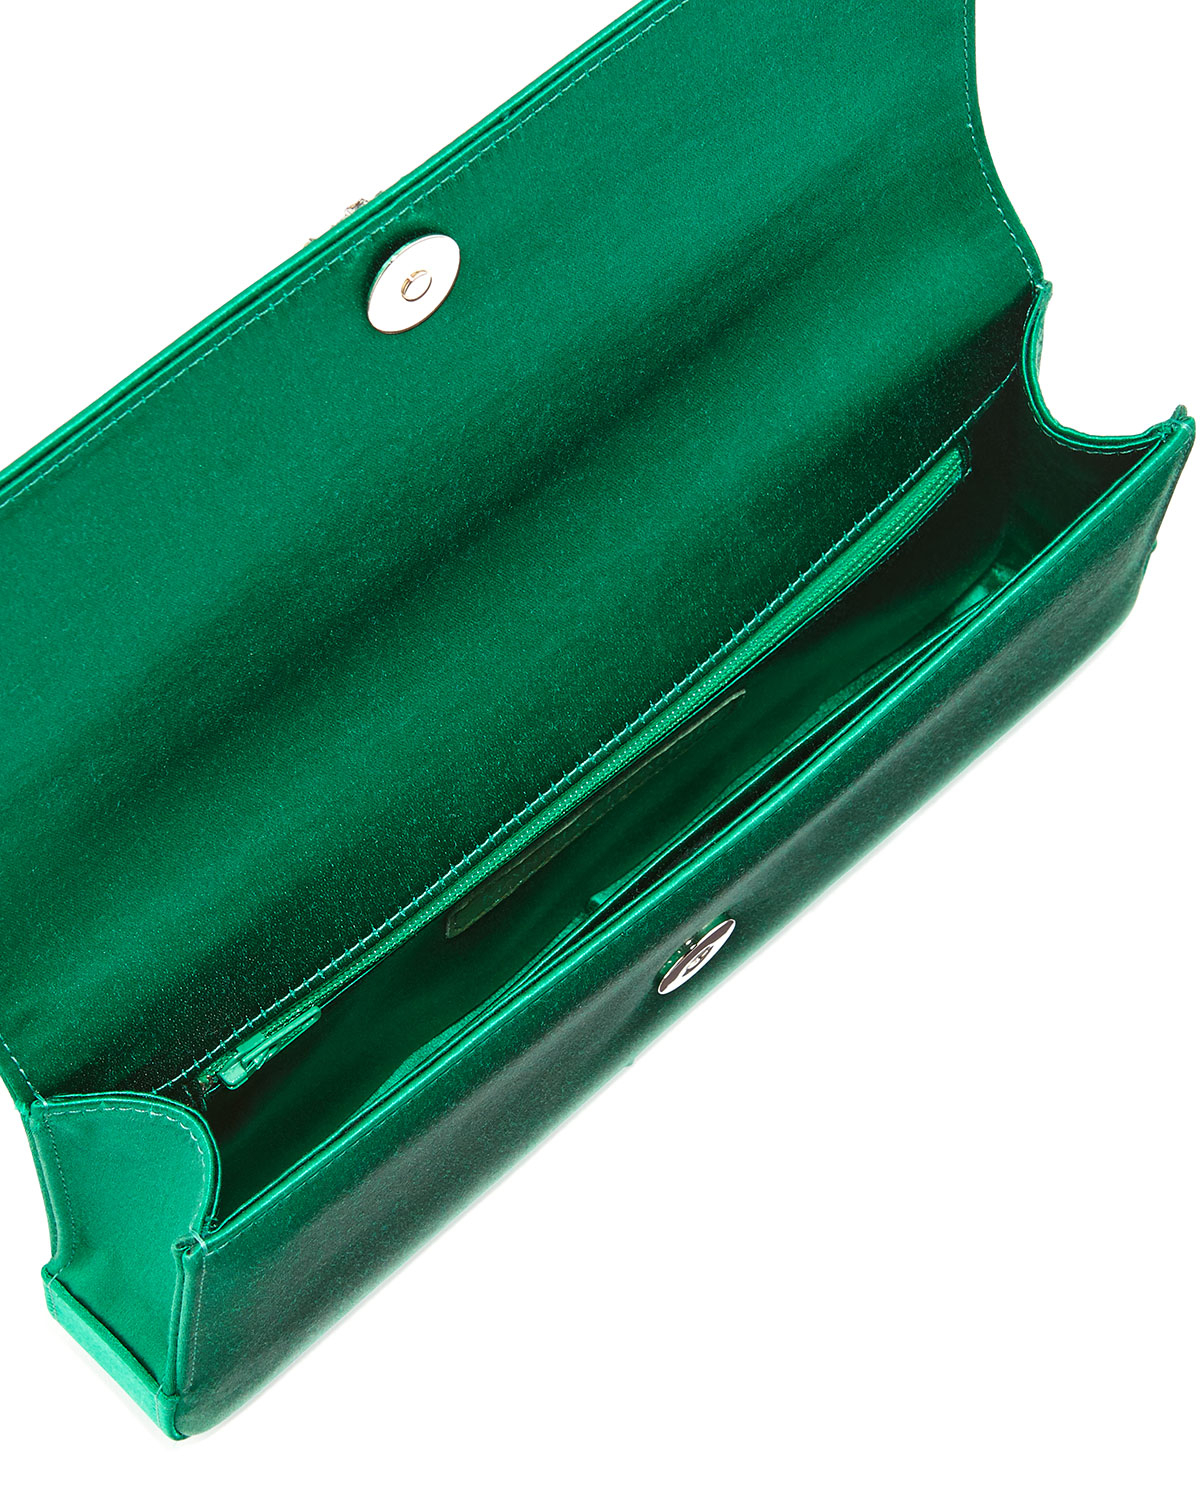 b4c04c98ba634 Manolo Blahnik Gothisi Crystal-Buckle Satin Clutch Bag in Green - Lyst